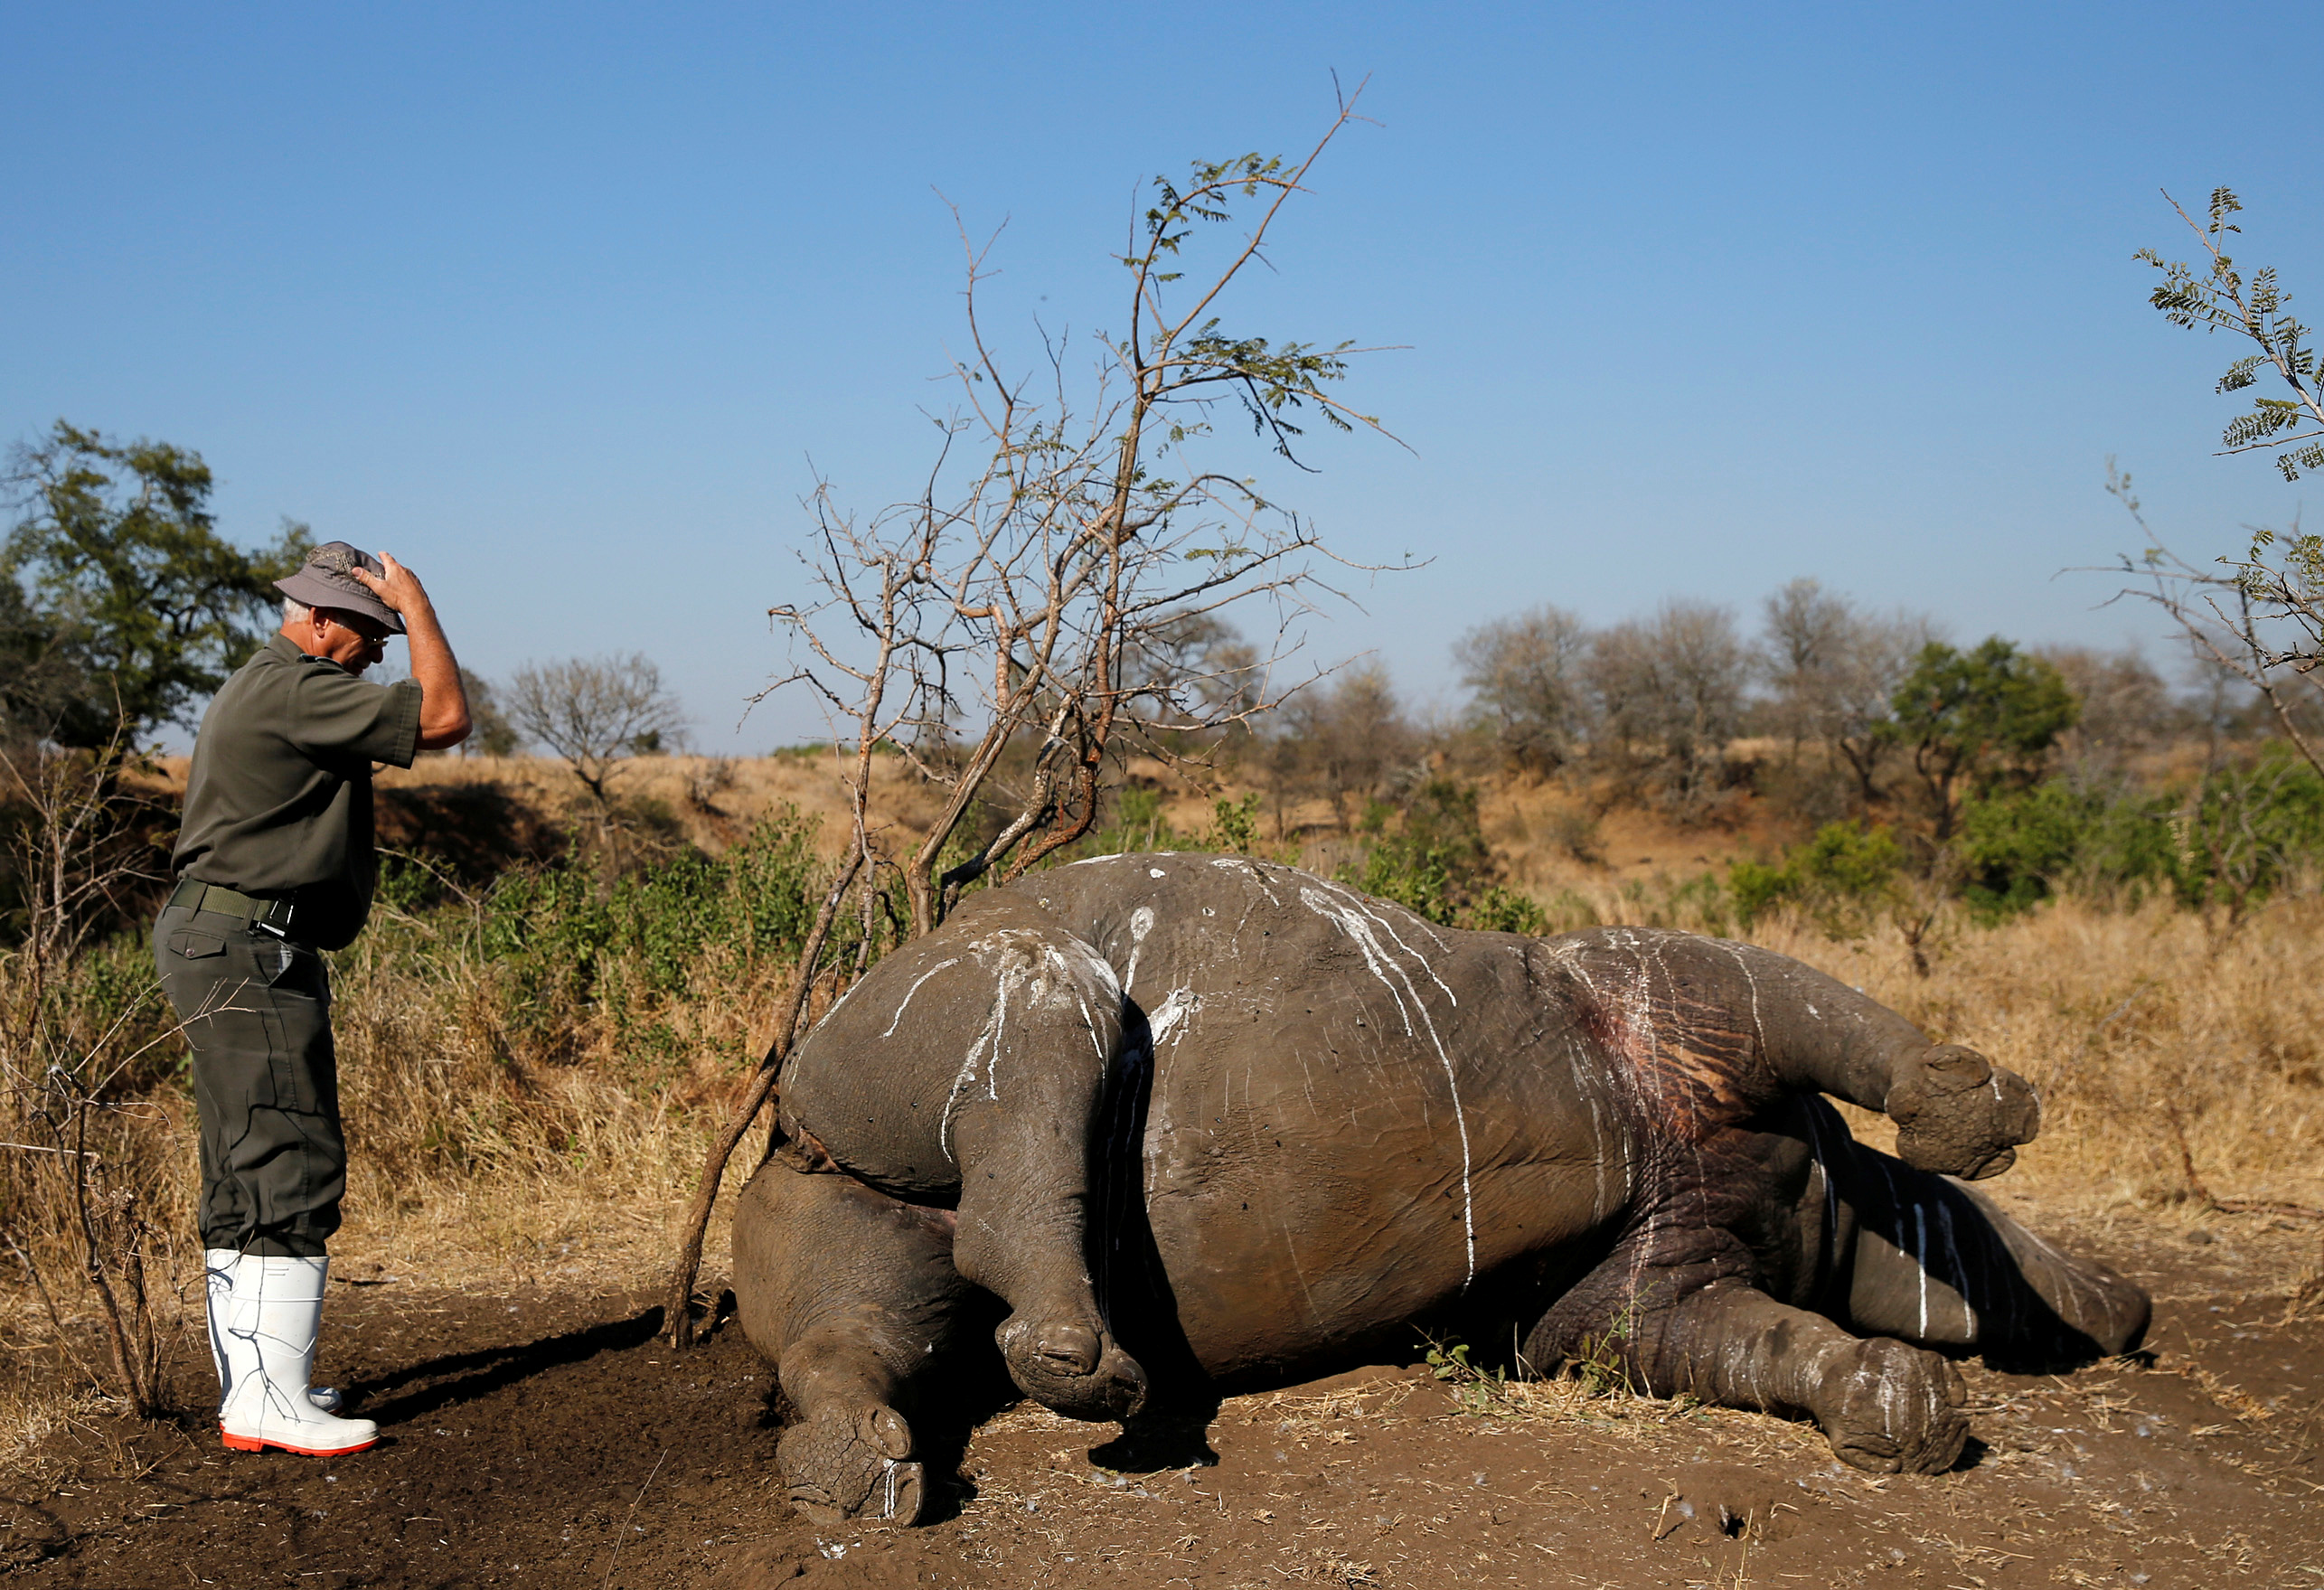 A rhino left dead in South Africa's Kruger National Park after being killed for its horn by poachers (Photo: Reuters)